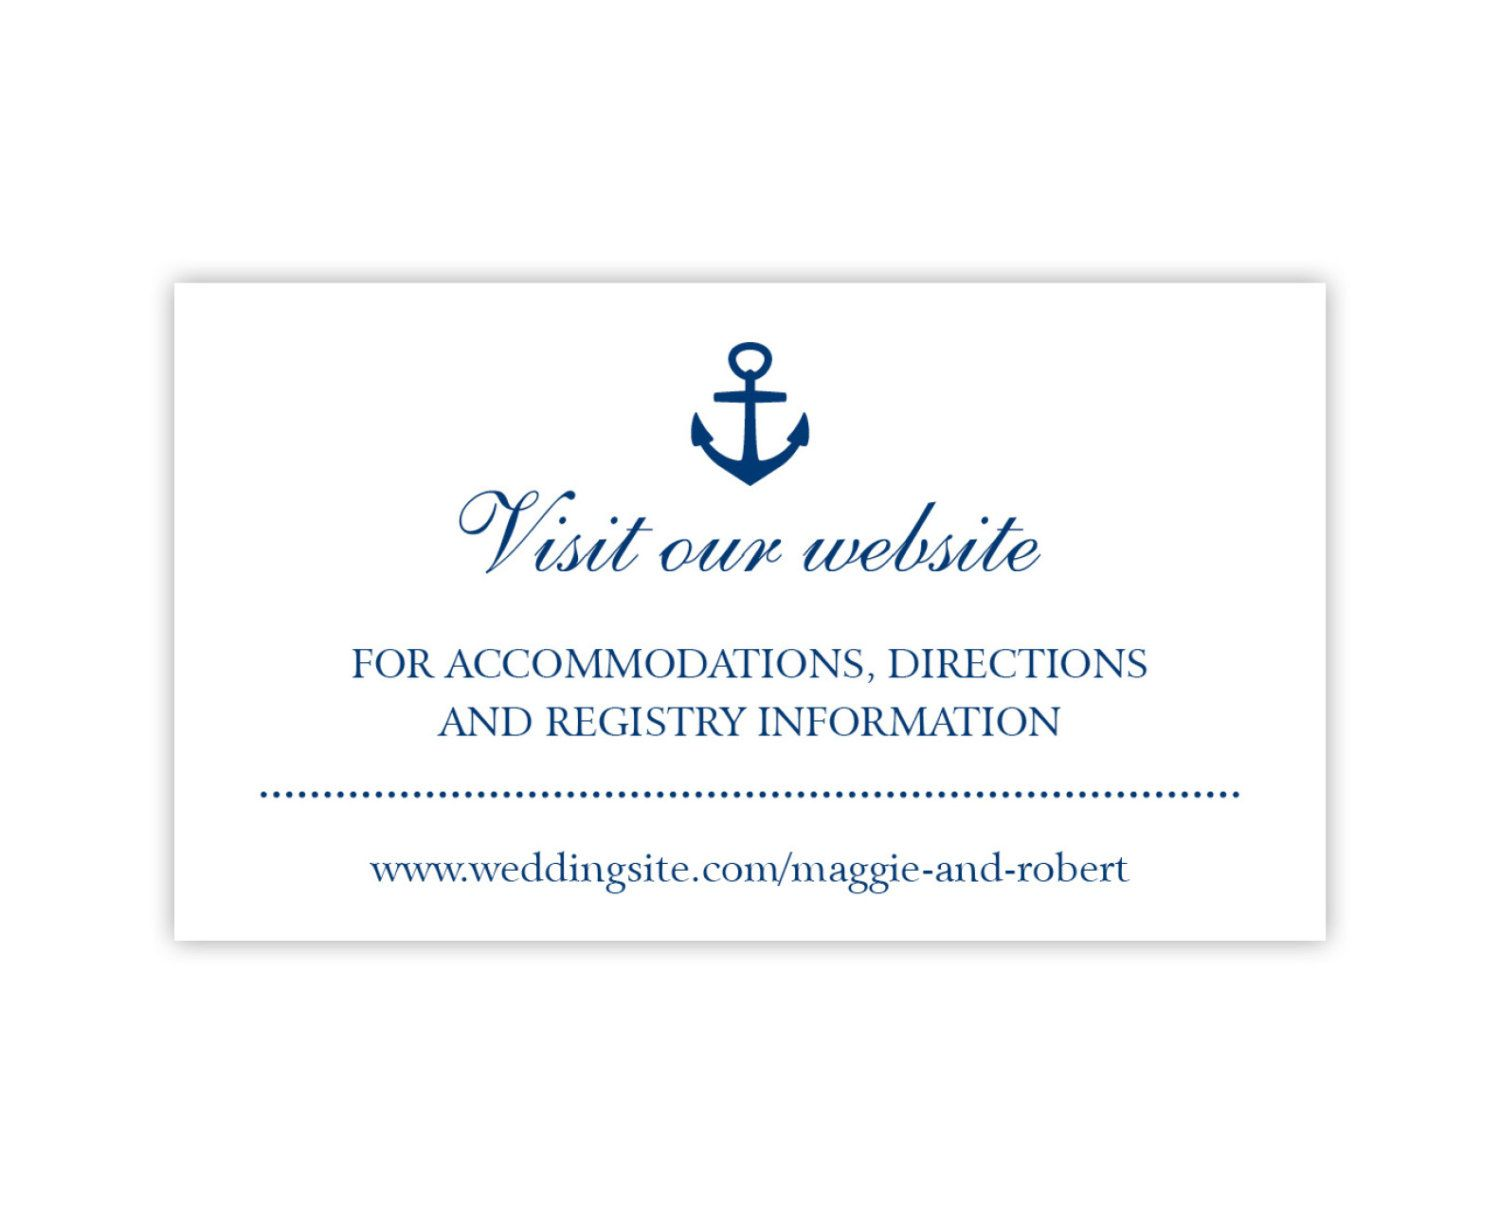 Wedding Website Cards Enclosure Hashtag Or Gift Registry Printed White With Navy Anchor 20 Pieces Per Order